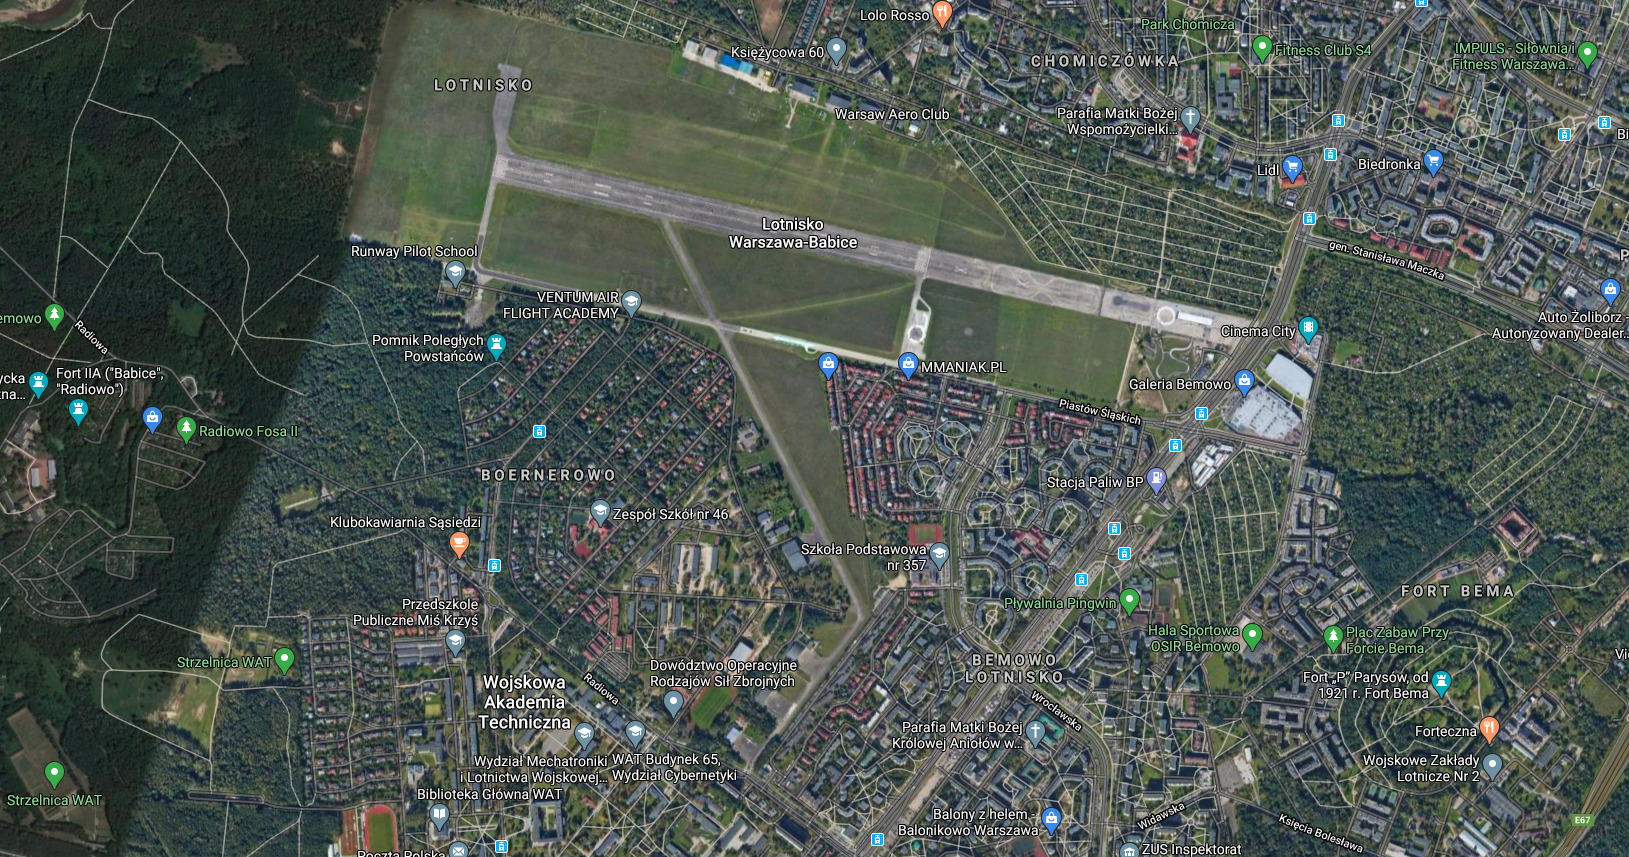 Bemowo airport, view from the satellite. 2018 year. Photo of LAC